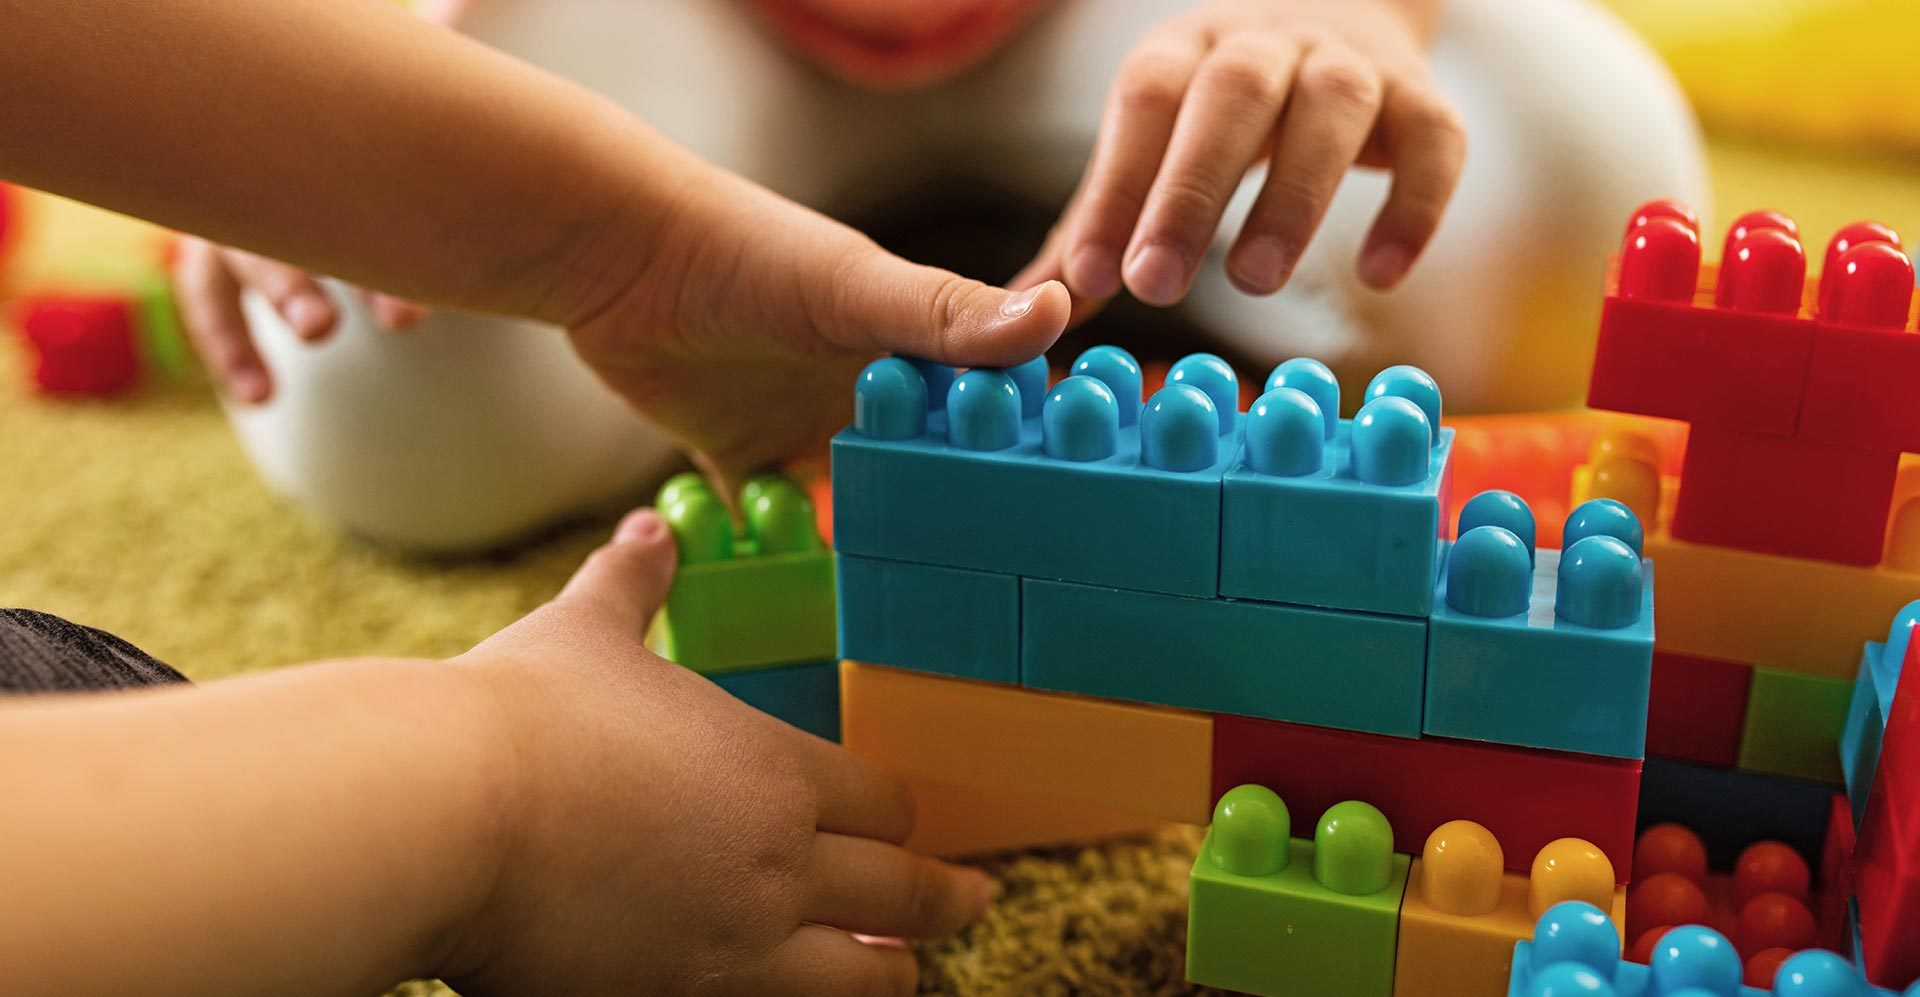 Children playing with colorful toy blocks